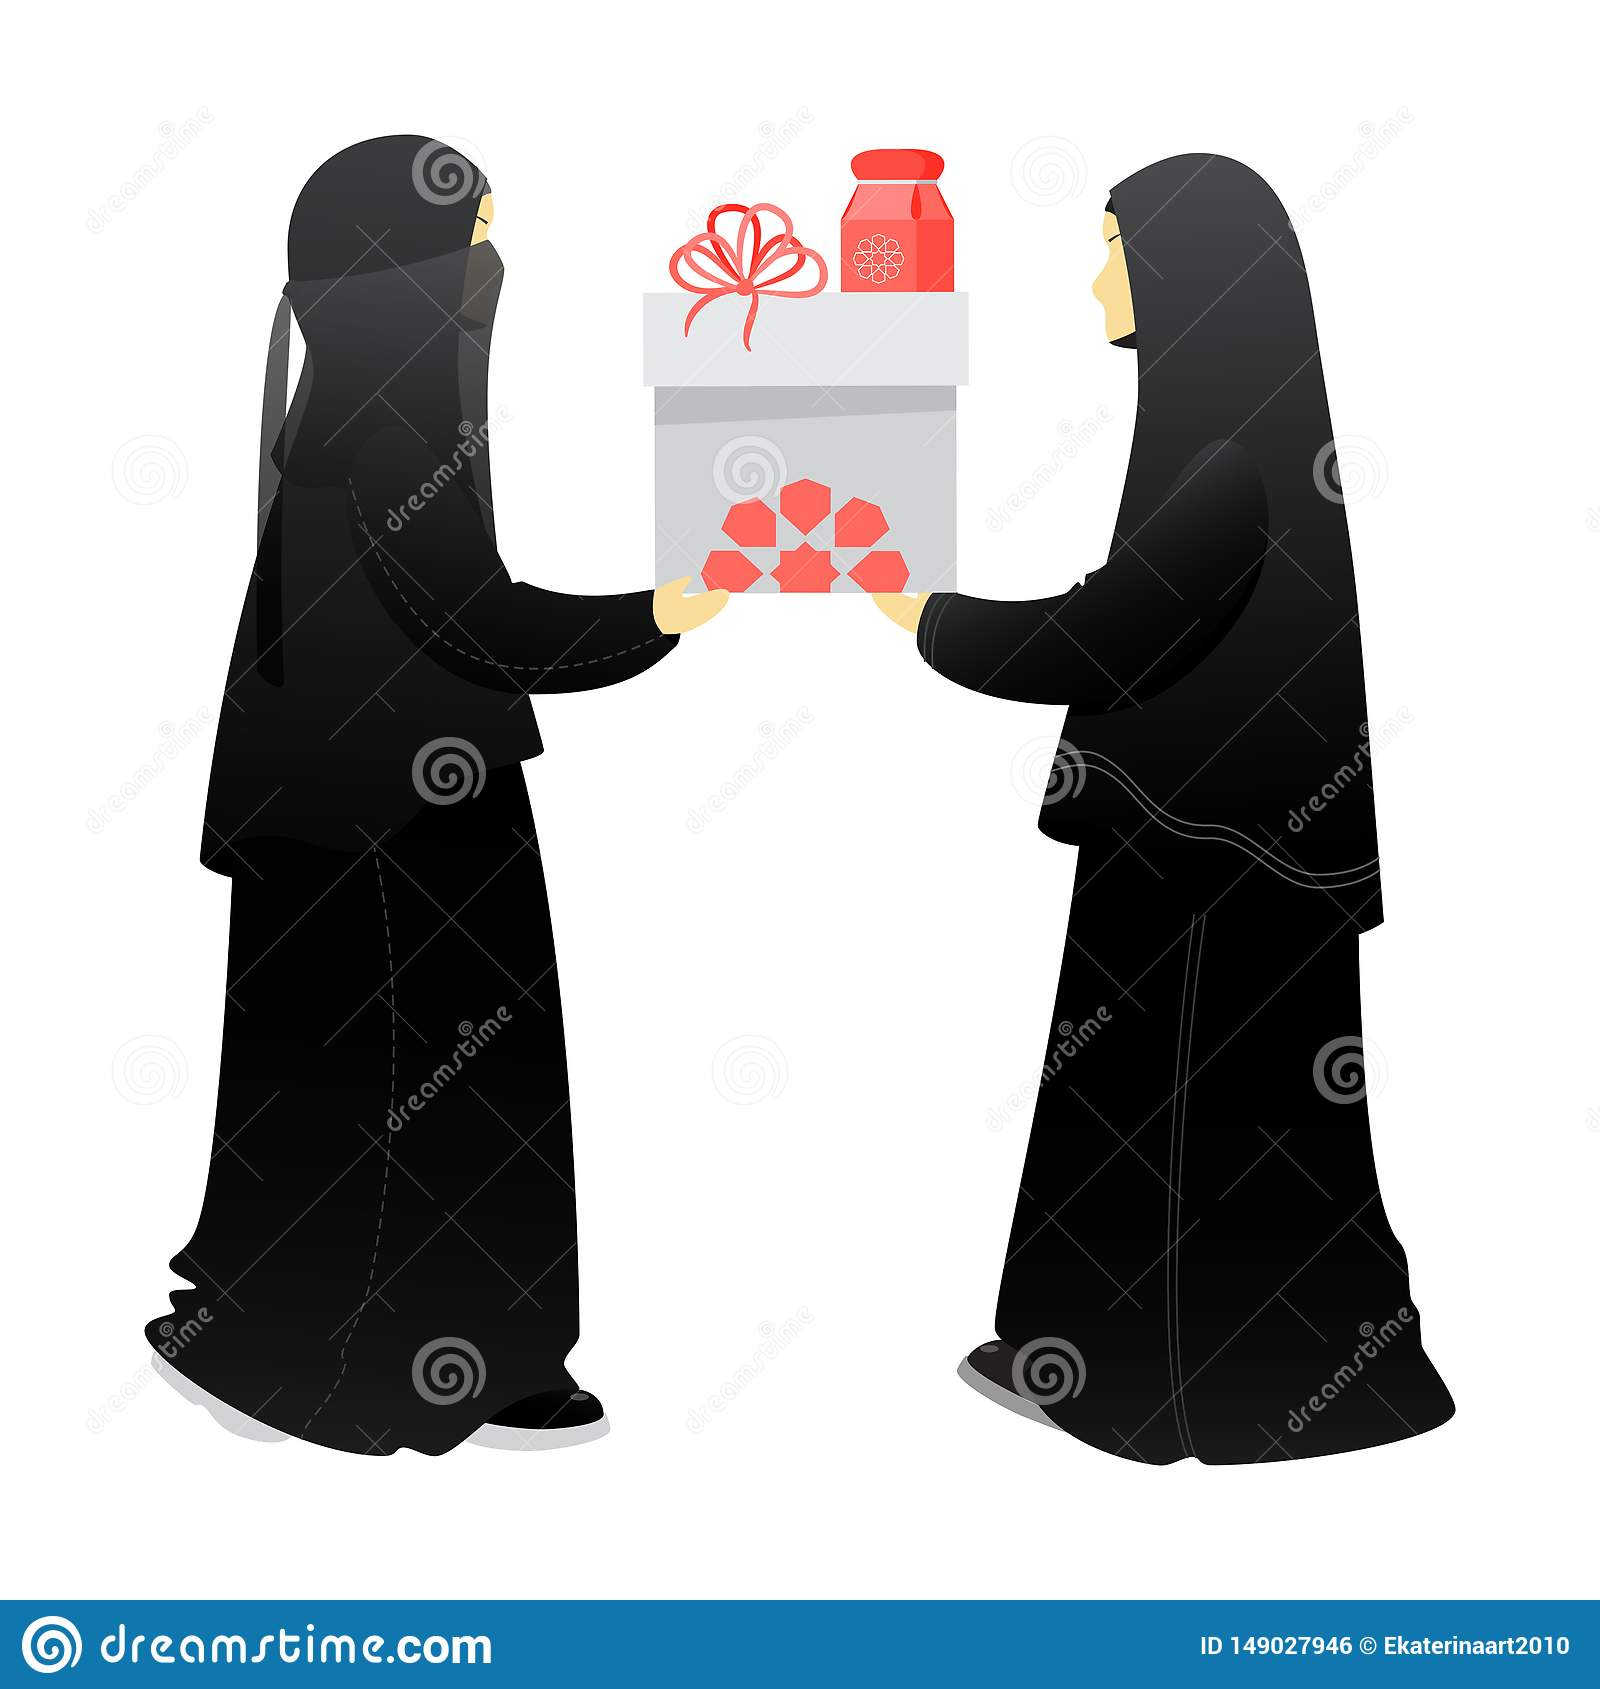 Muslim woman, sisters give a gift to each other